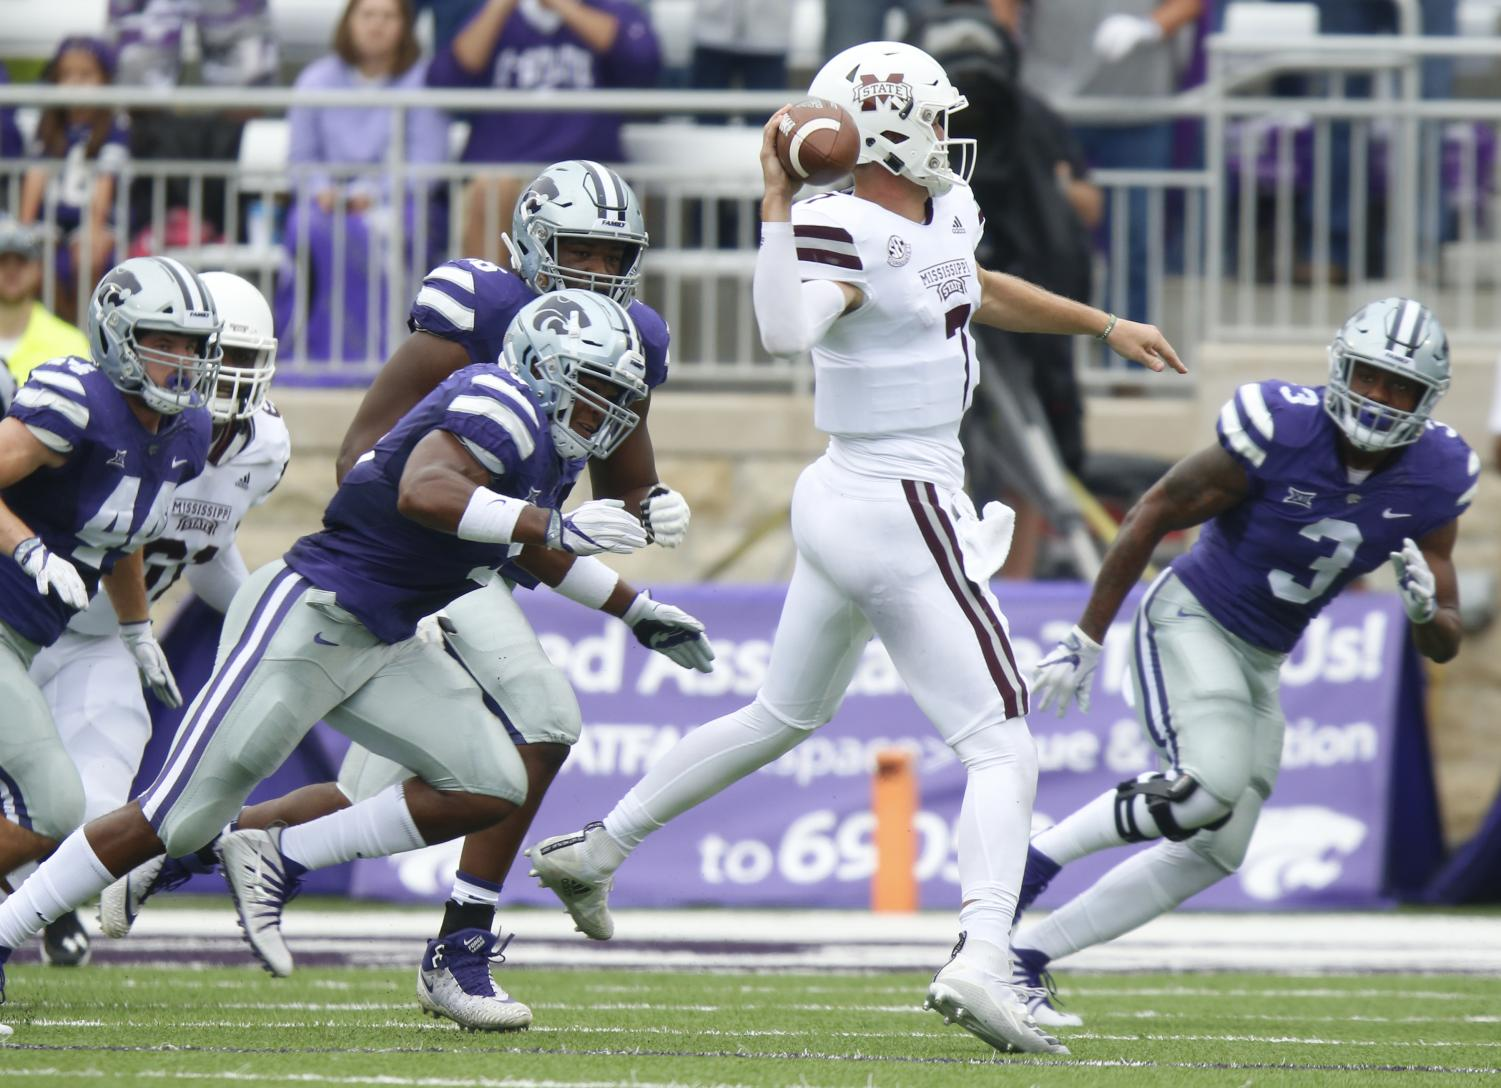 Kansas State defenders try to contain Mississippi State quarterback Nick Fitzgerald (7) in the first half on Saturday, Sept. 8, 2018, at Snyder Family Stadium in Manhattan, Kan. Mississippi State won, 31-10. (Bo Rader/Wichita Eagle/TNS)